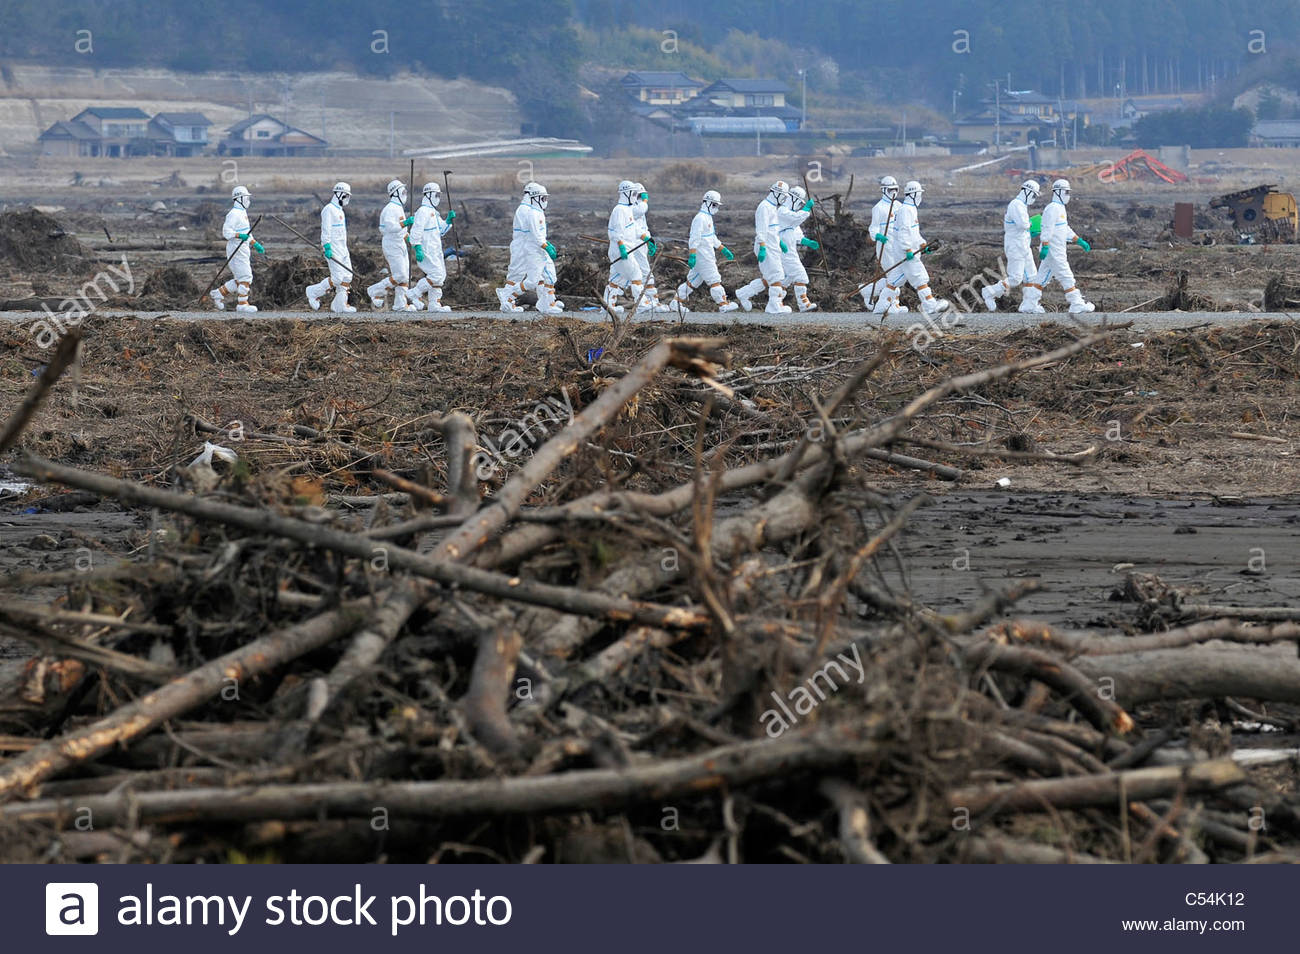 People wear protective gear, a police search party shift through debris as they search for missing people. - Stock Image